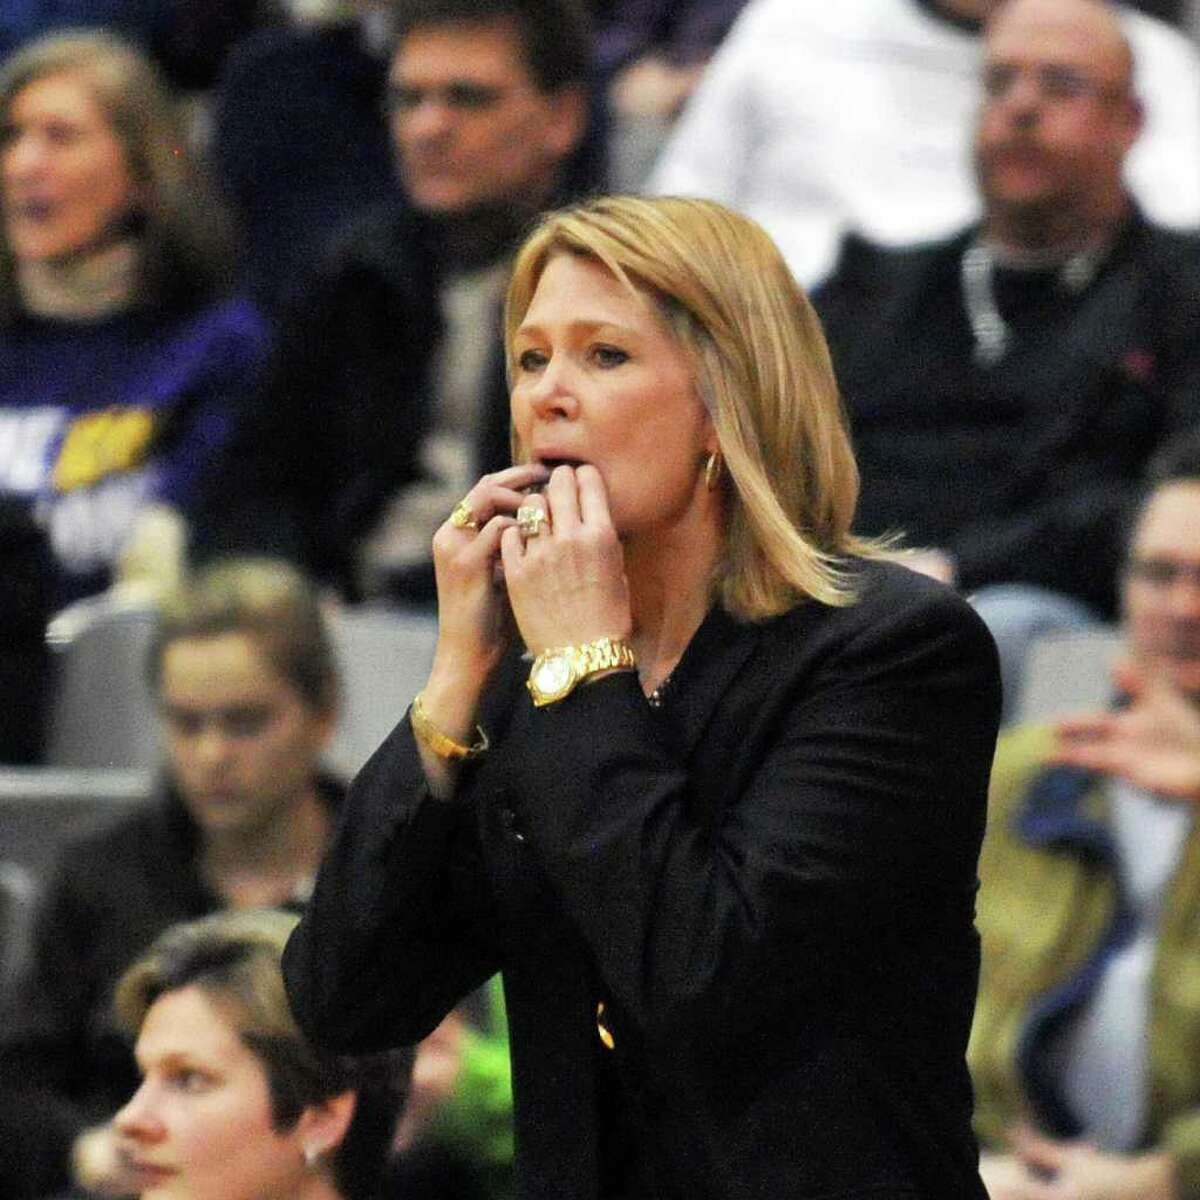 UAlbany's head coach Katie Abrahamson-Henderson watches a close game between her team and UMBCfor the championship of the America East at the SEFCU Arena in Albany Saturday March 10, 2012. (John Carl D'Annibale / Times Union)